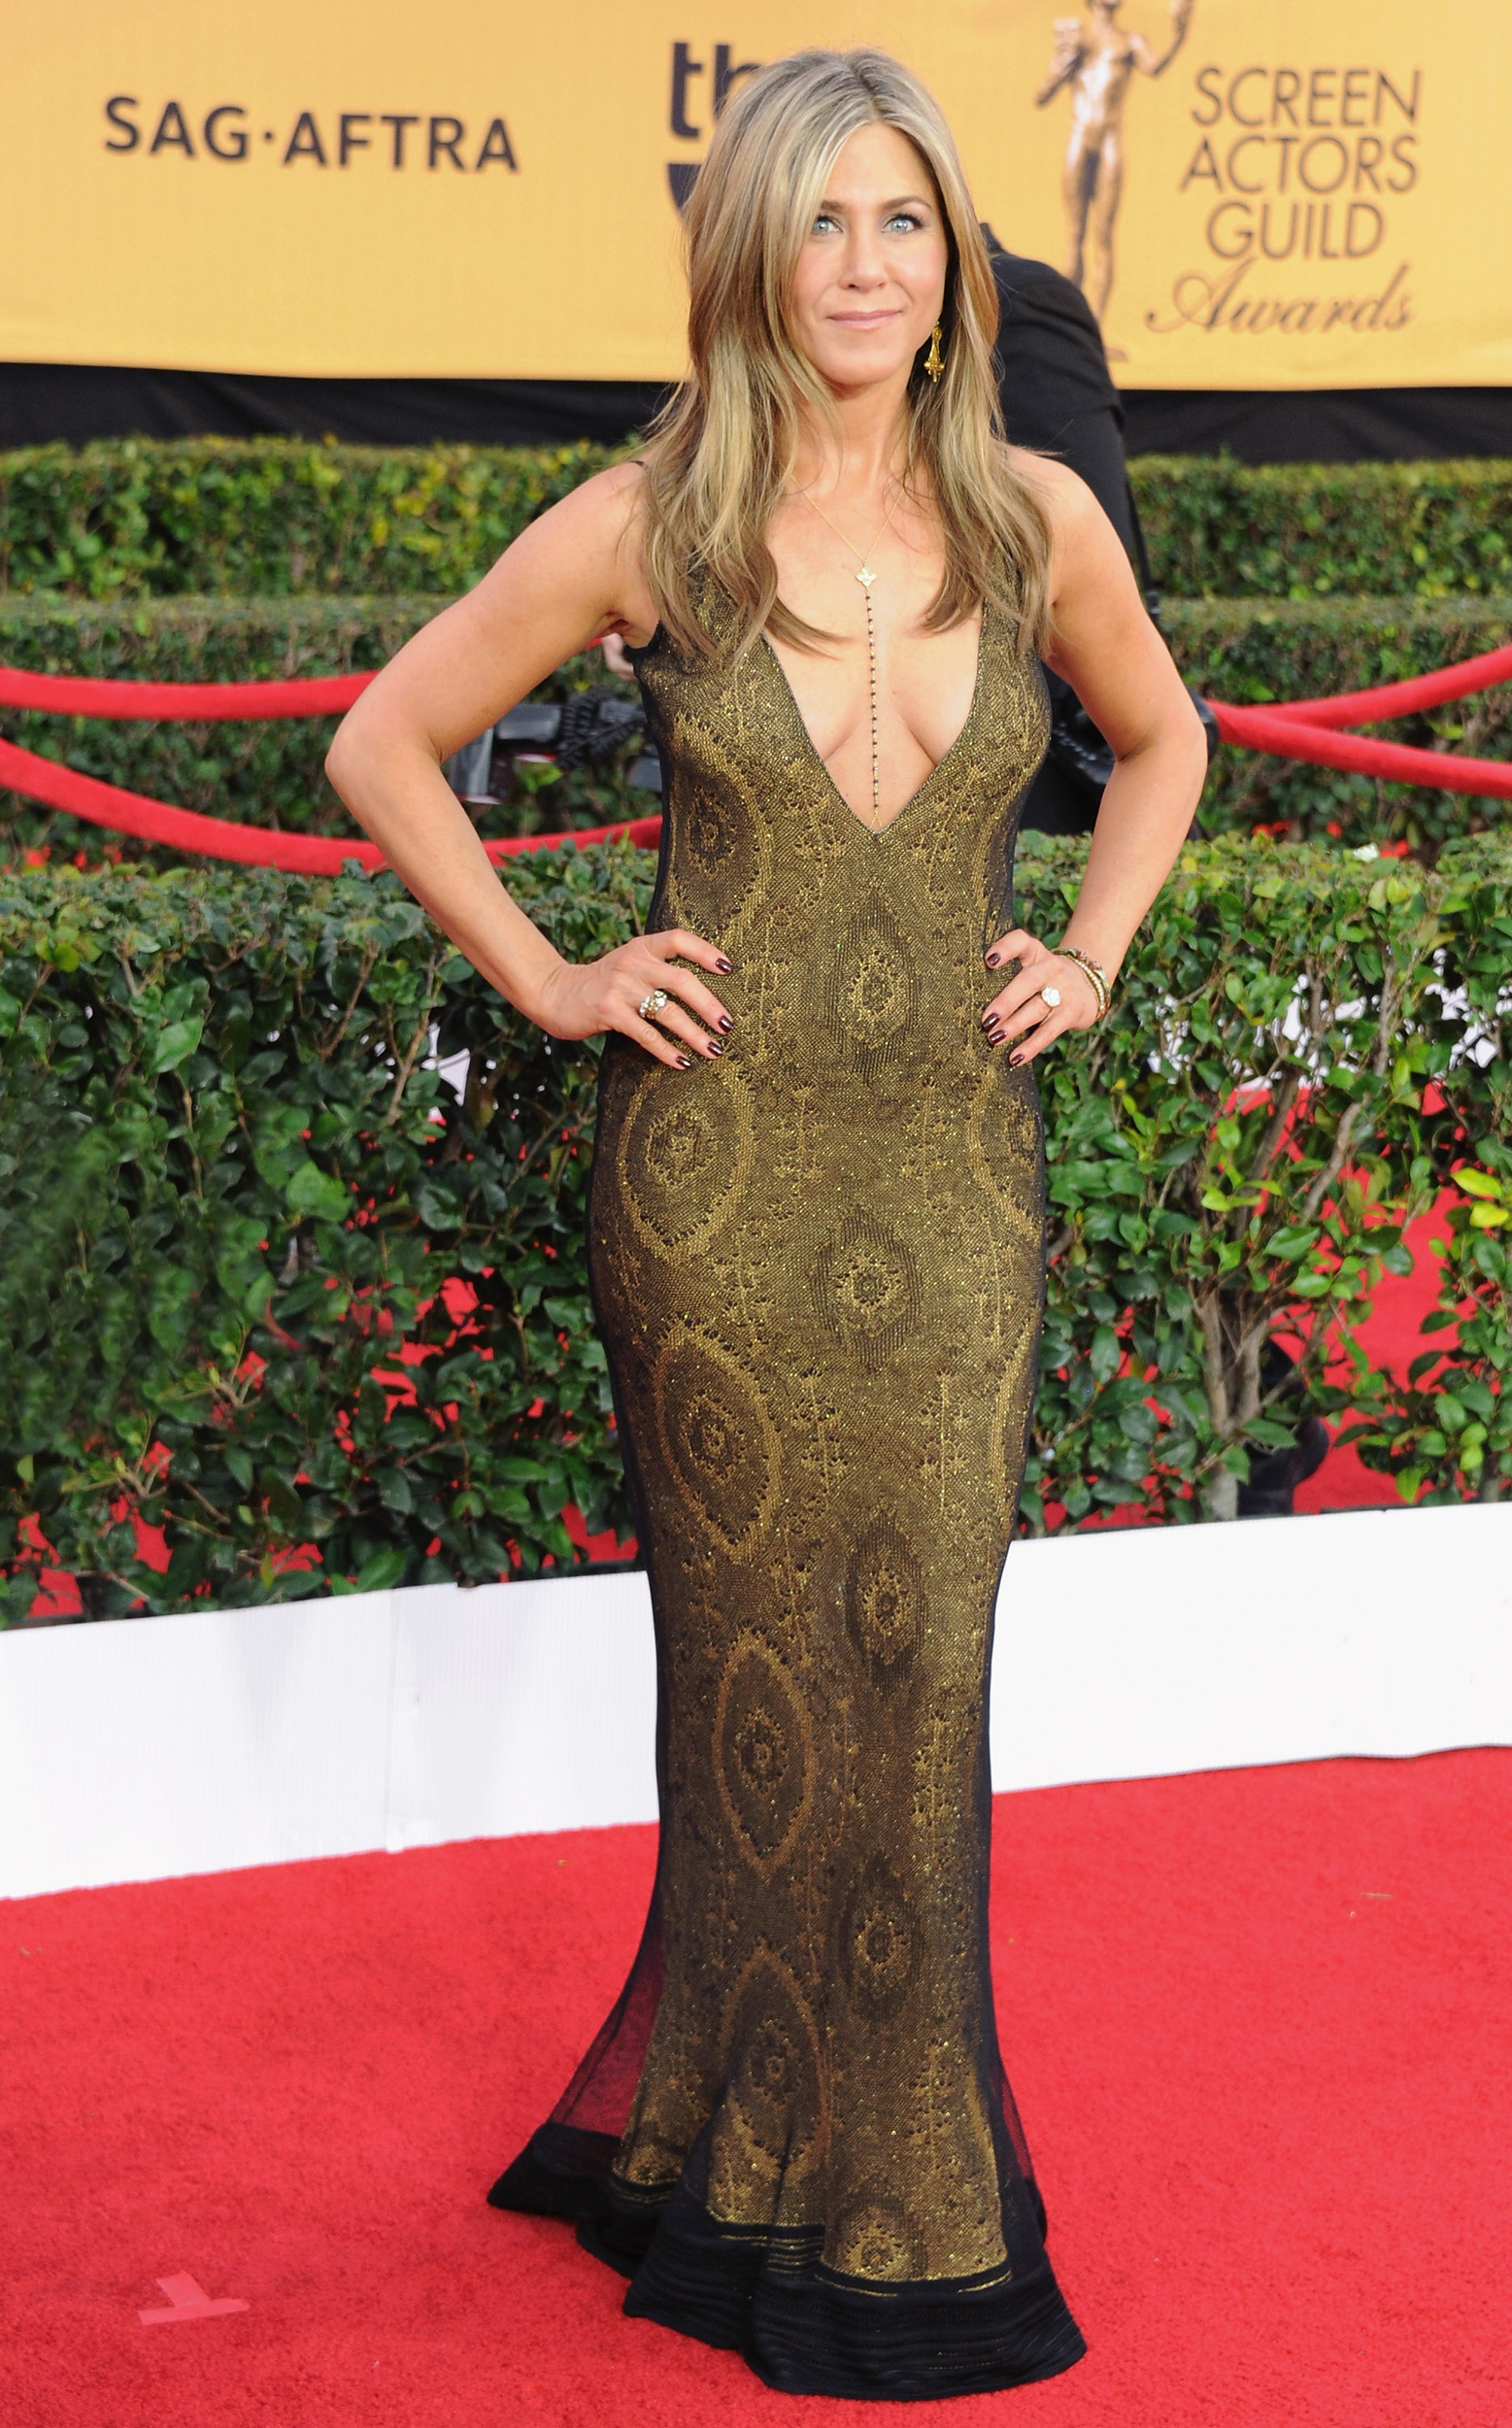 21st annual screen actors guild awards arrivals 1 Самые красивые украшения церемонии Screen Actors Guild Award 2015